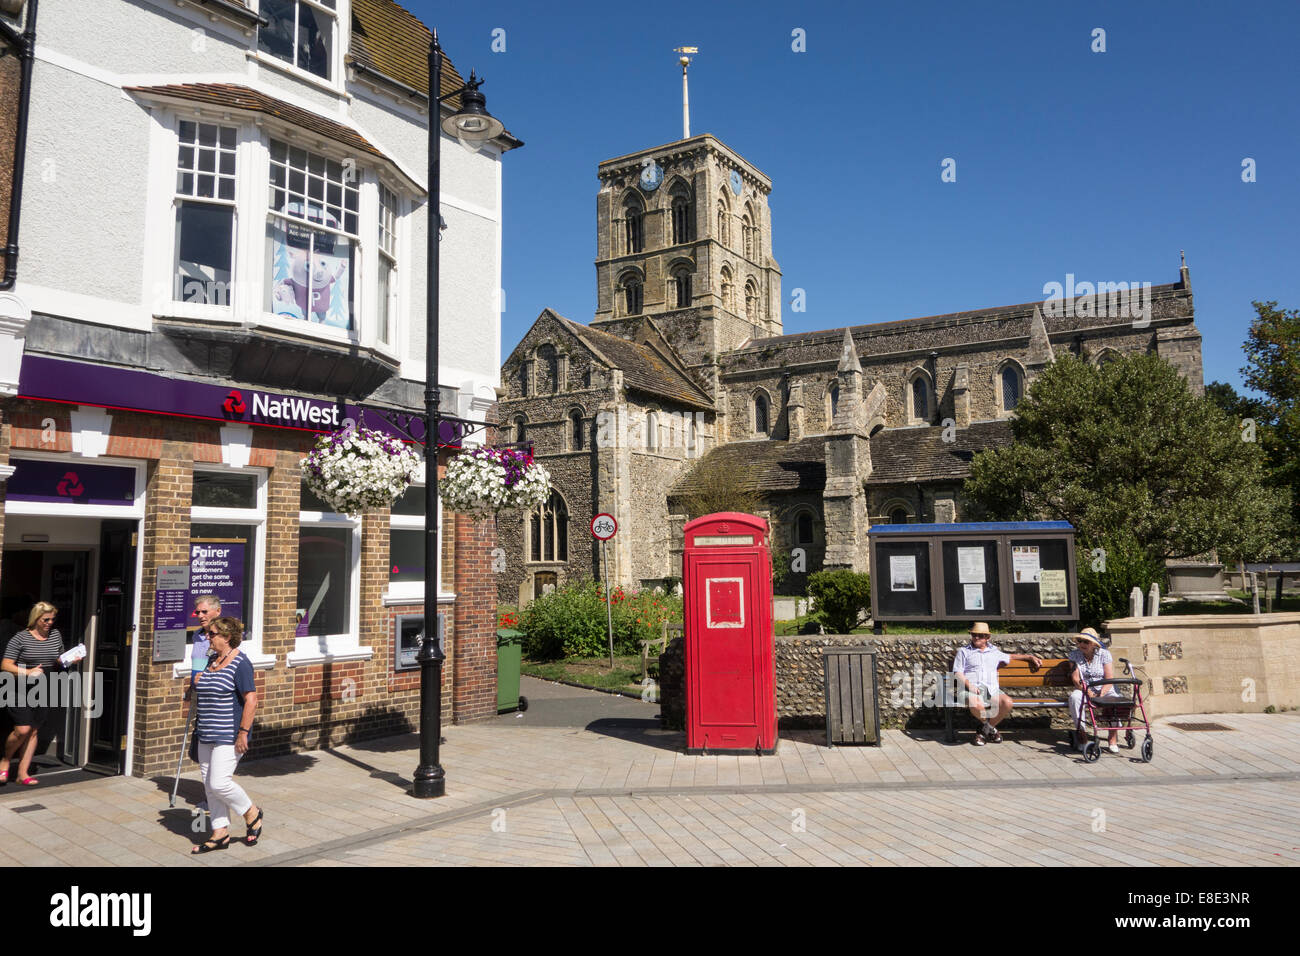 street in small English town of Shoreham near Brighton in county of Sussex on the south coast of Southern England Stock Photo